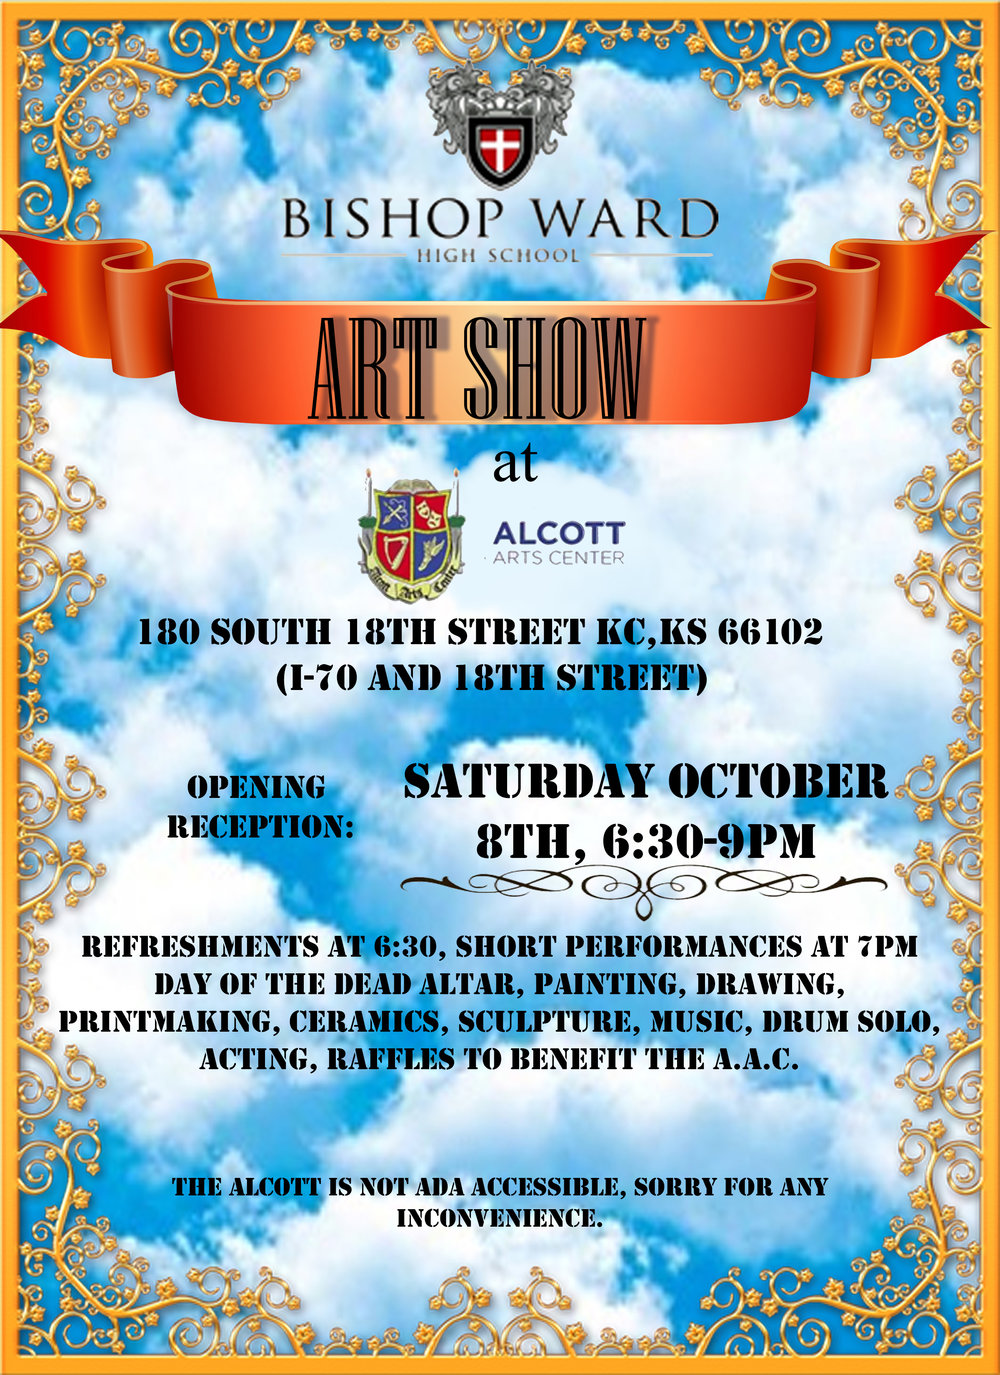 Bishop Ward Art Show Poster 10-8-2016 .jpg